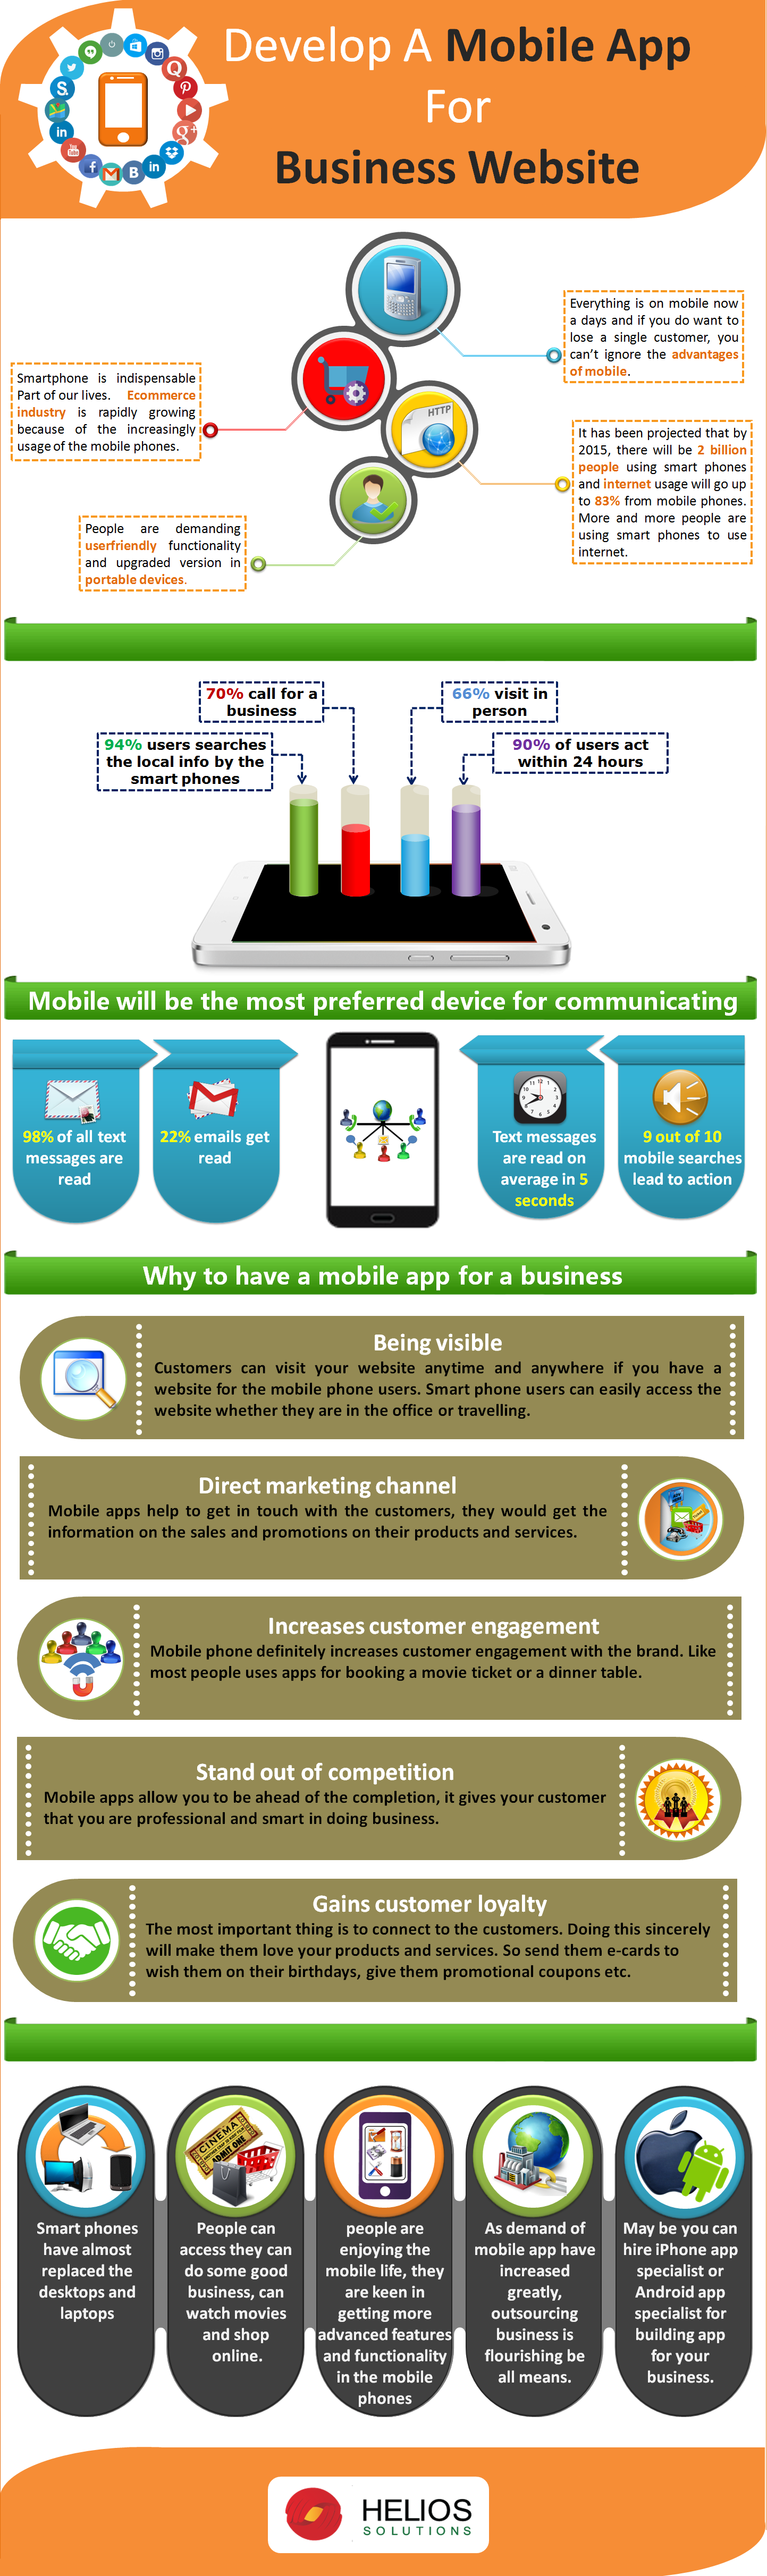 Develop A Mobile App For Business Website - Image 1